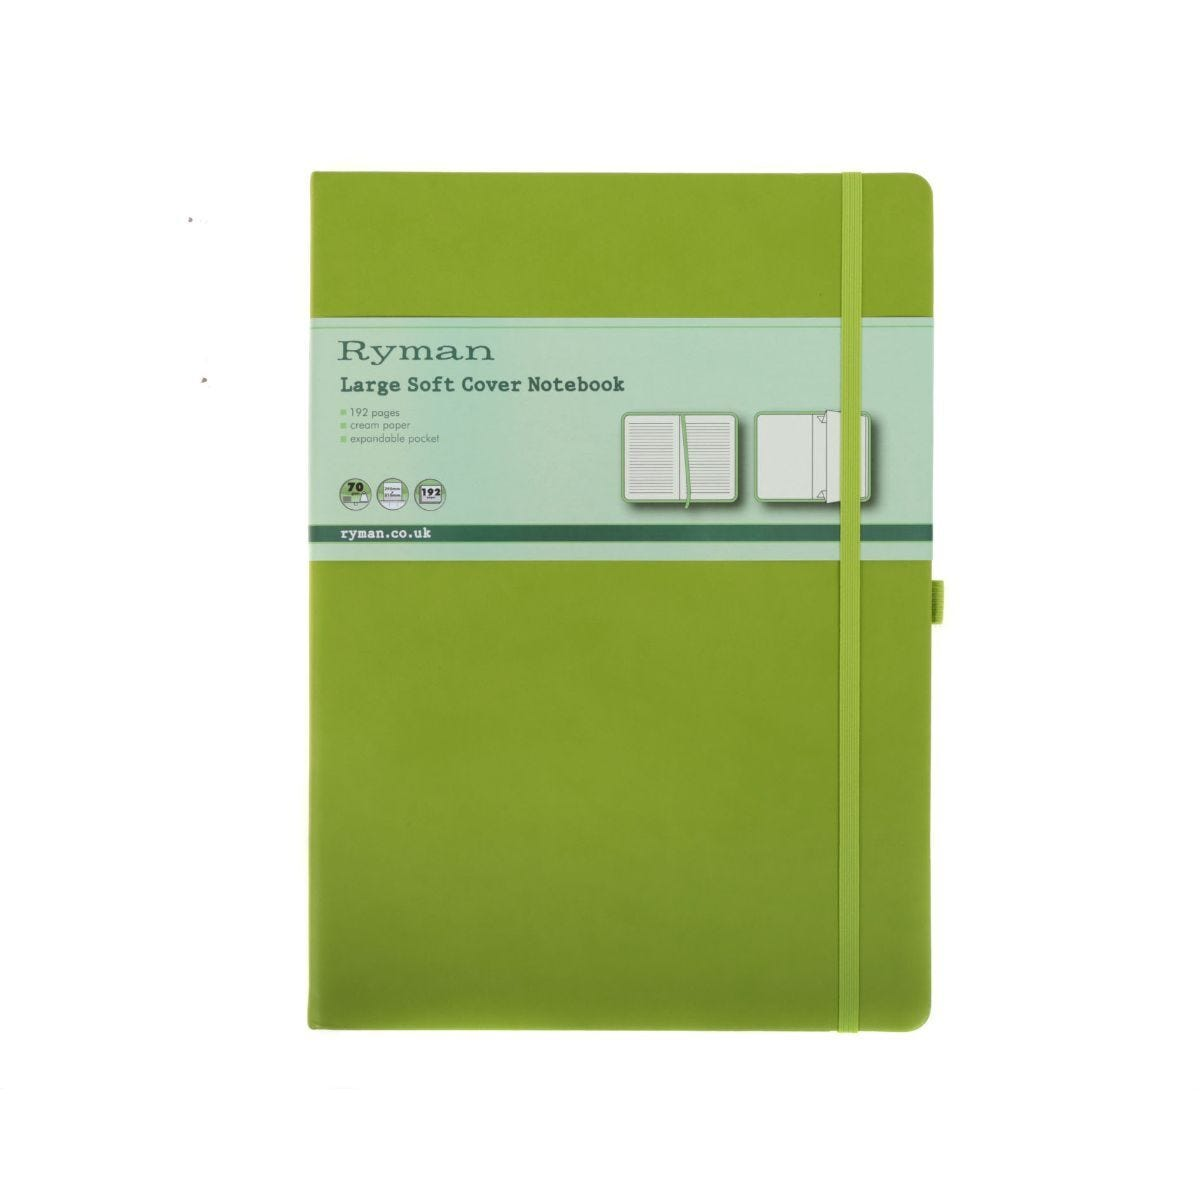 Ryman Soft Cover Notebook Large Ruled 192 Page Lime Green